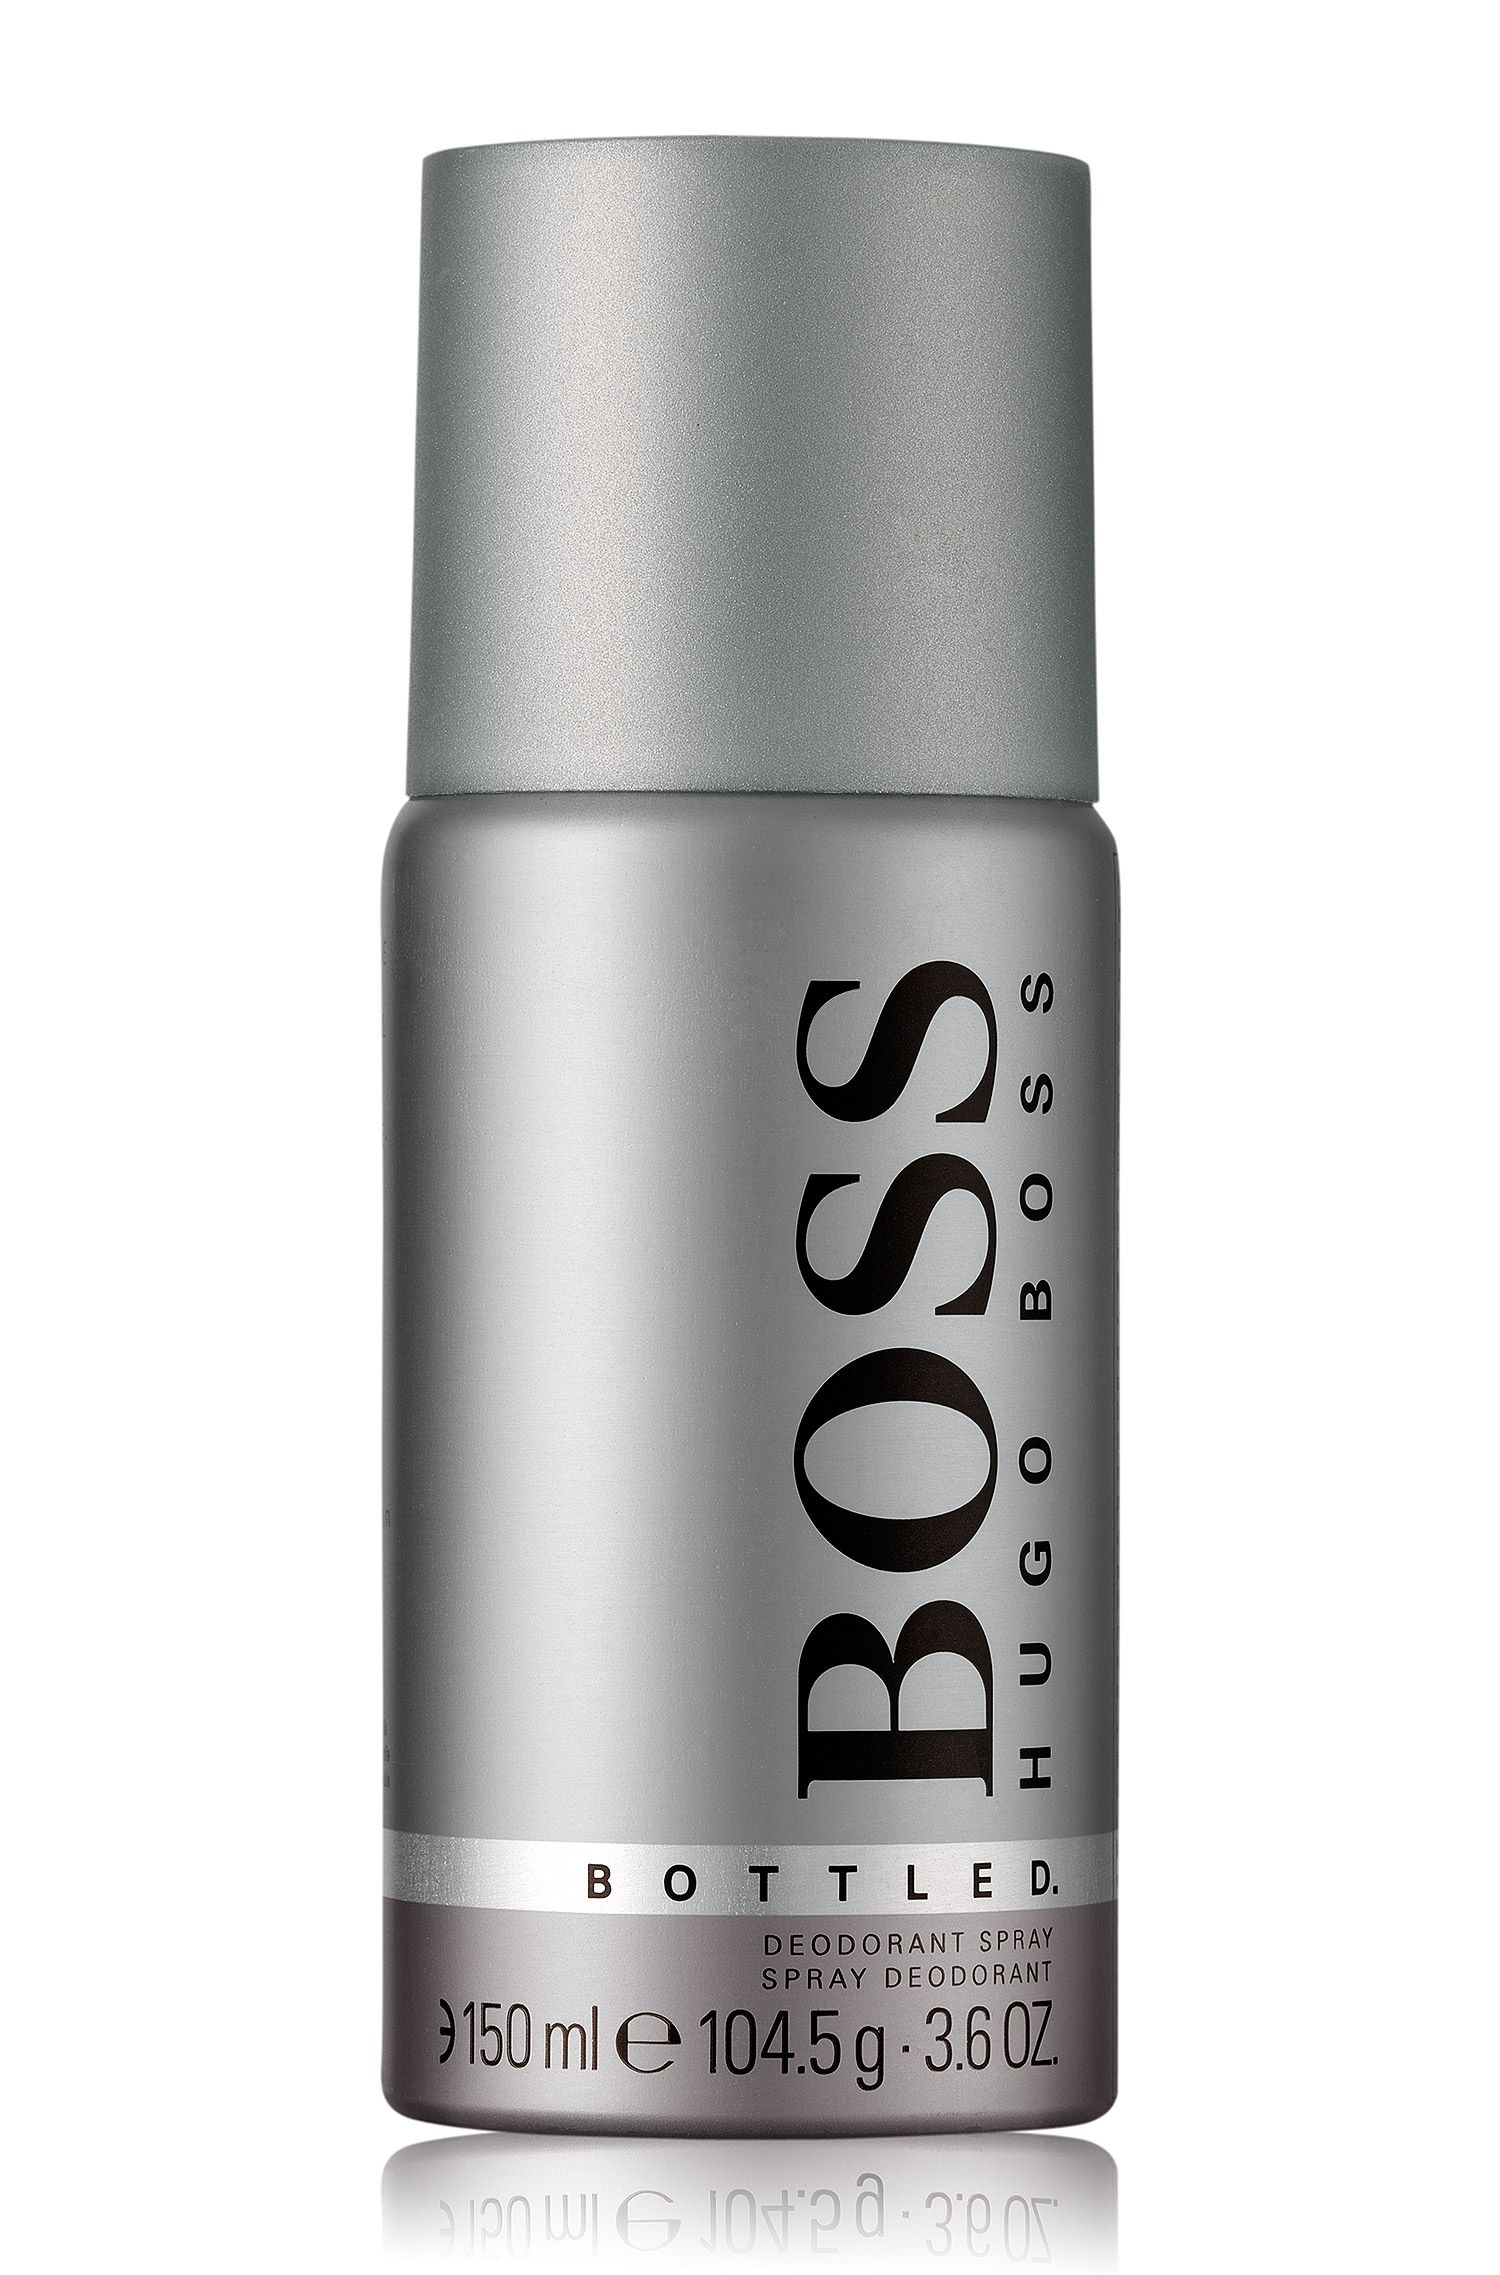 BOSS Bottled deodorantspray 150 ml